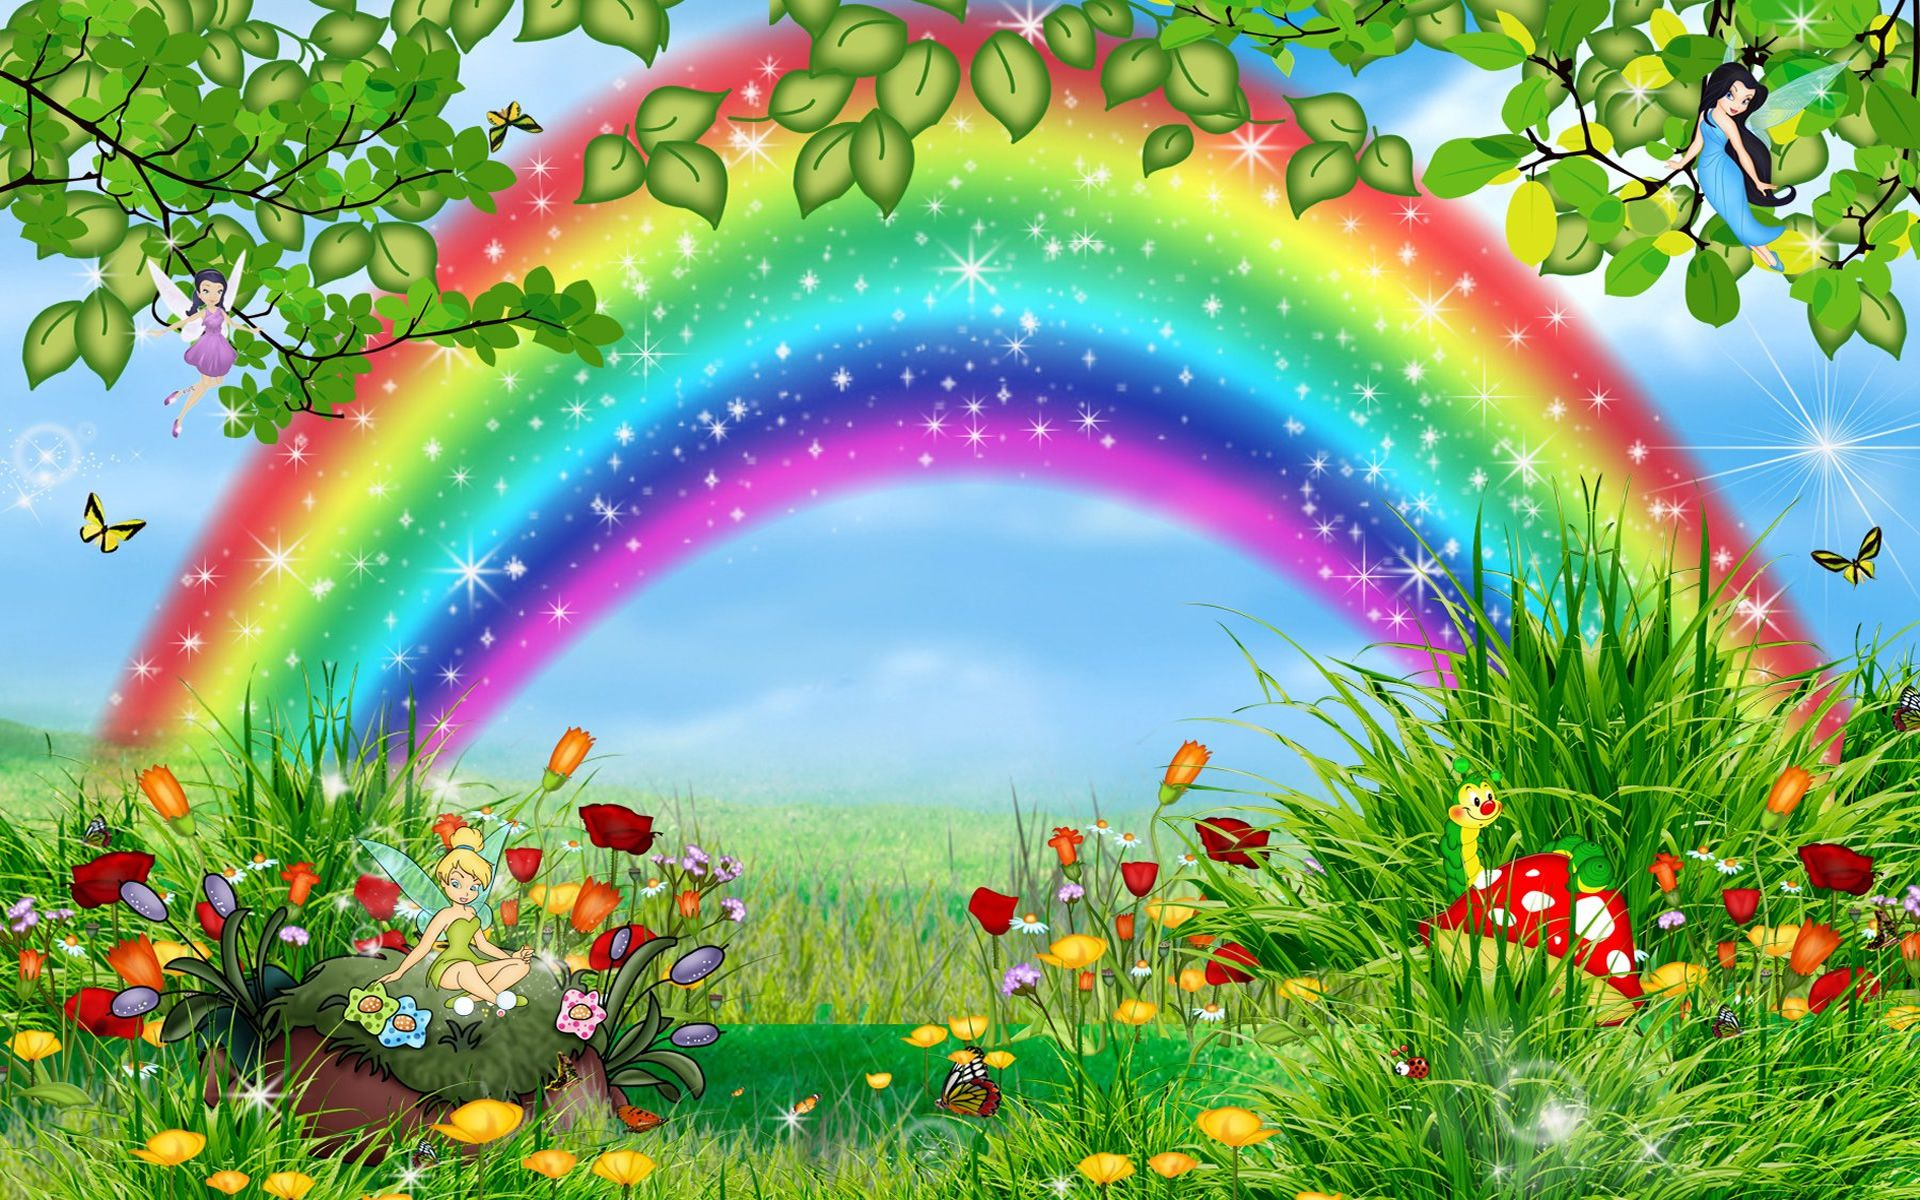 Click Here For More Rainbows Rainbow Appears In The Sky At The End Of The Rain Description From Newtopwallp Rainbow Wallpaper Rainbow Art Beautiful Wallpapers